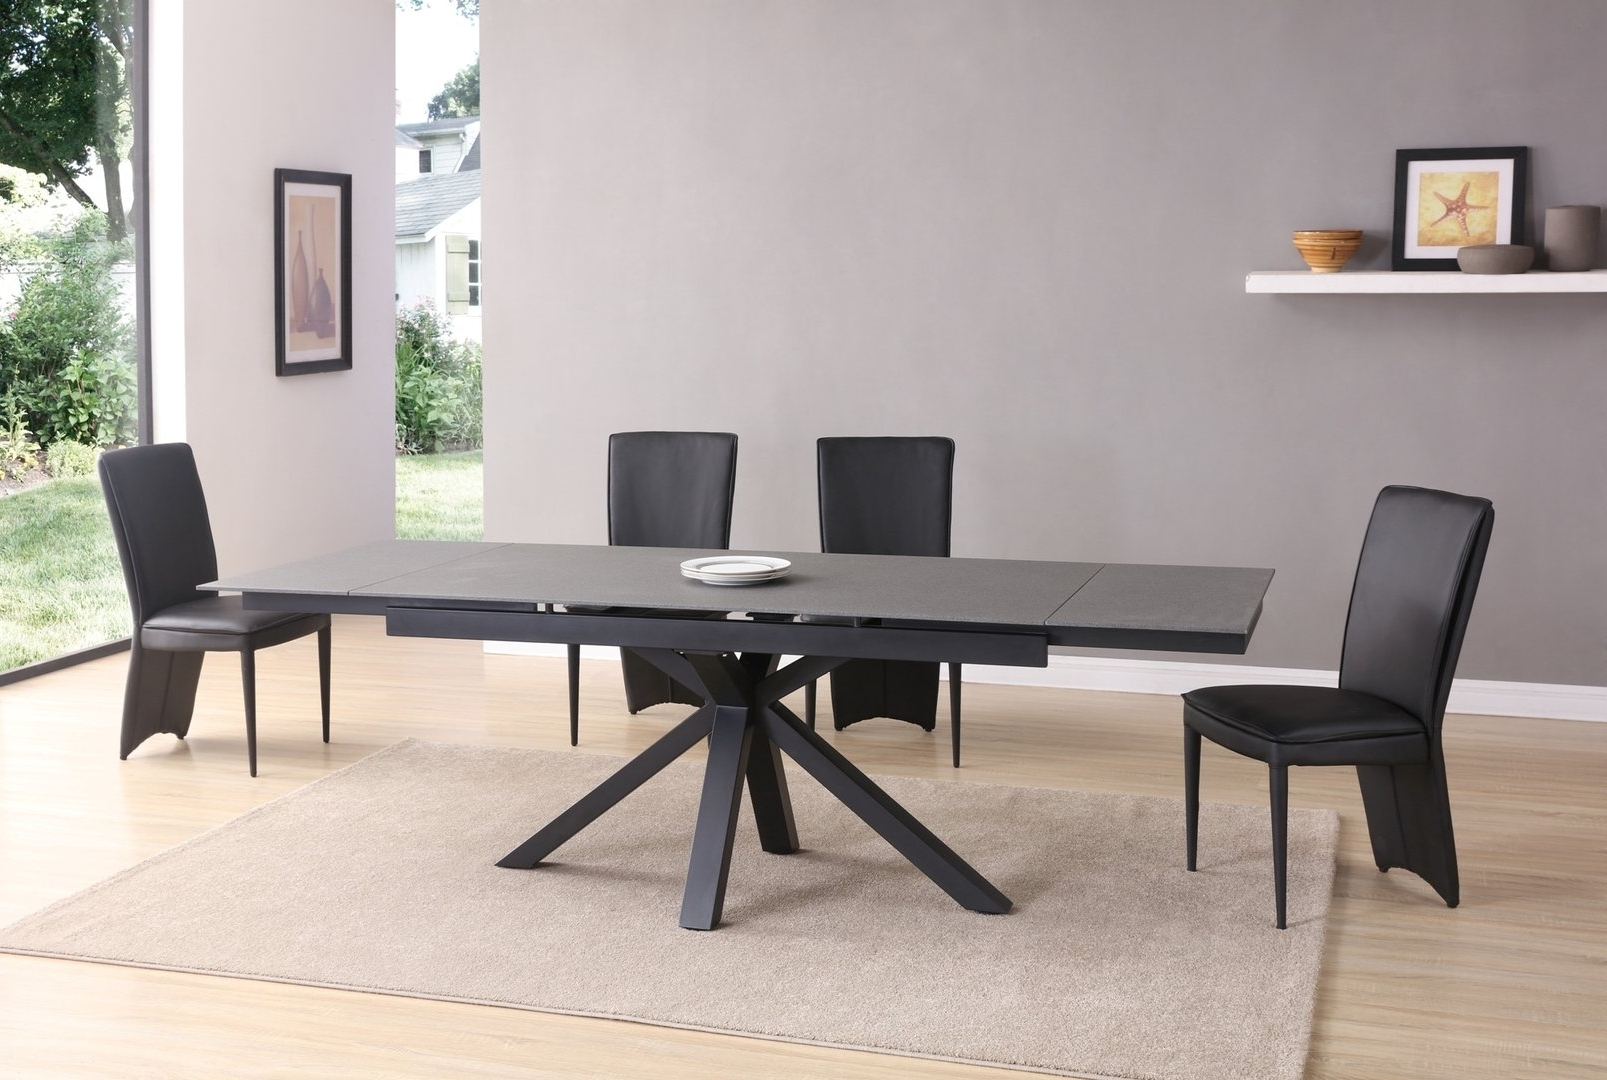 Extending Black Dining Tables For Well Known Grey And Black Stone Glass Dining Table And 8 Chairs – Homegenies (Gallery 9 of 25)